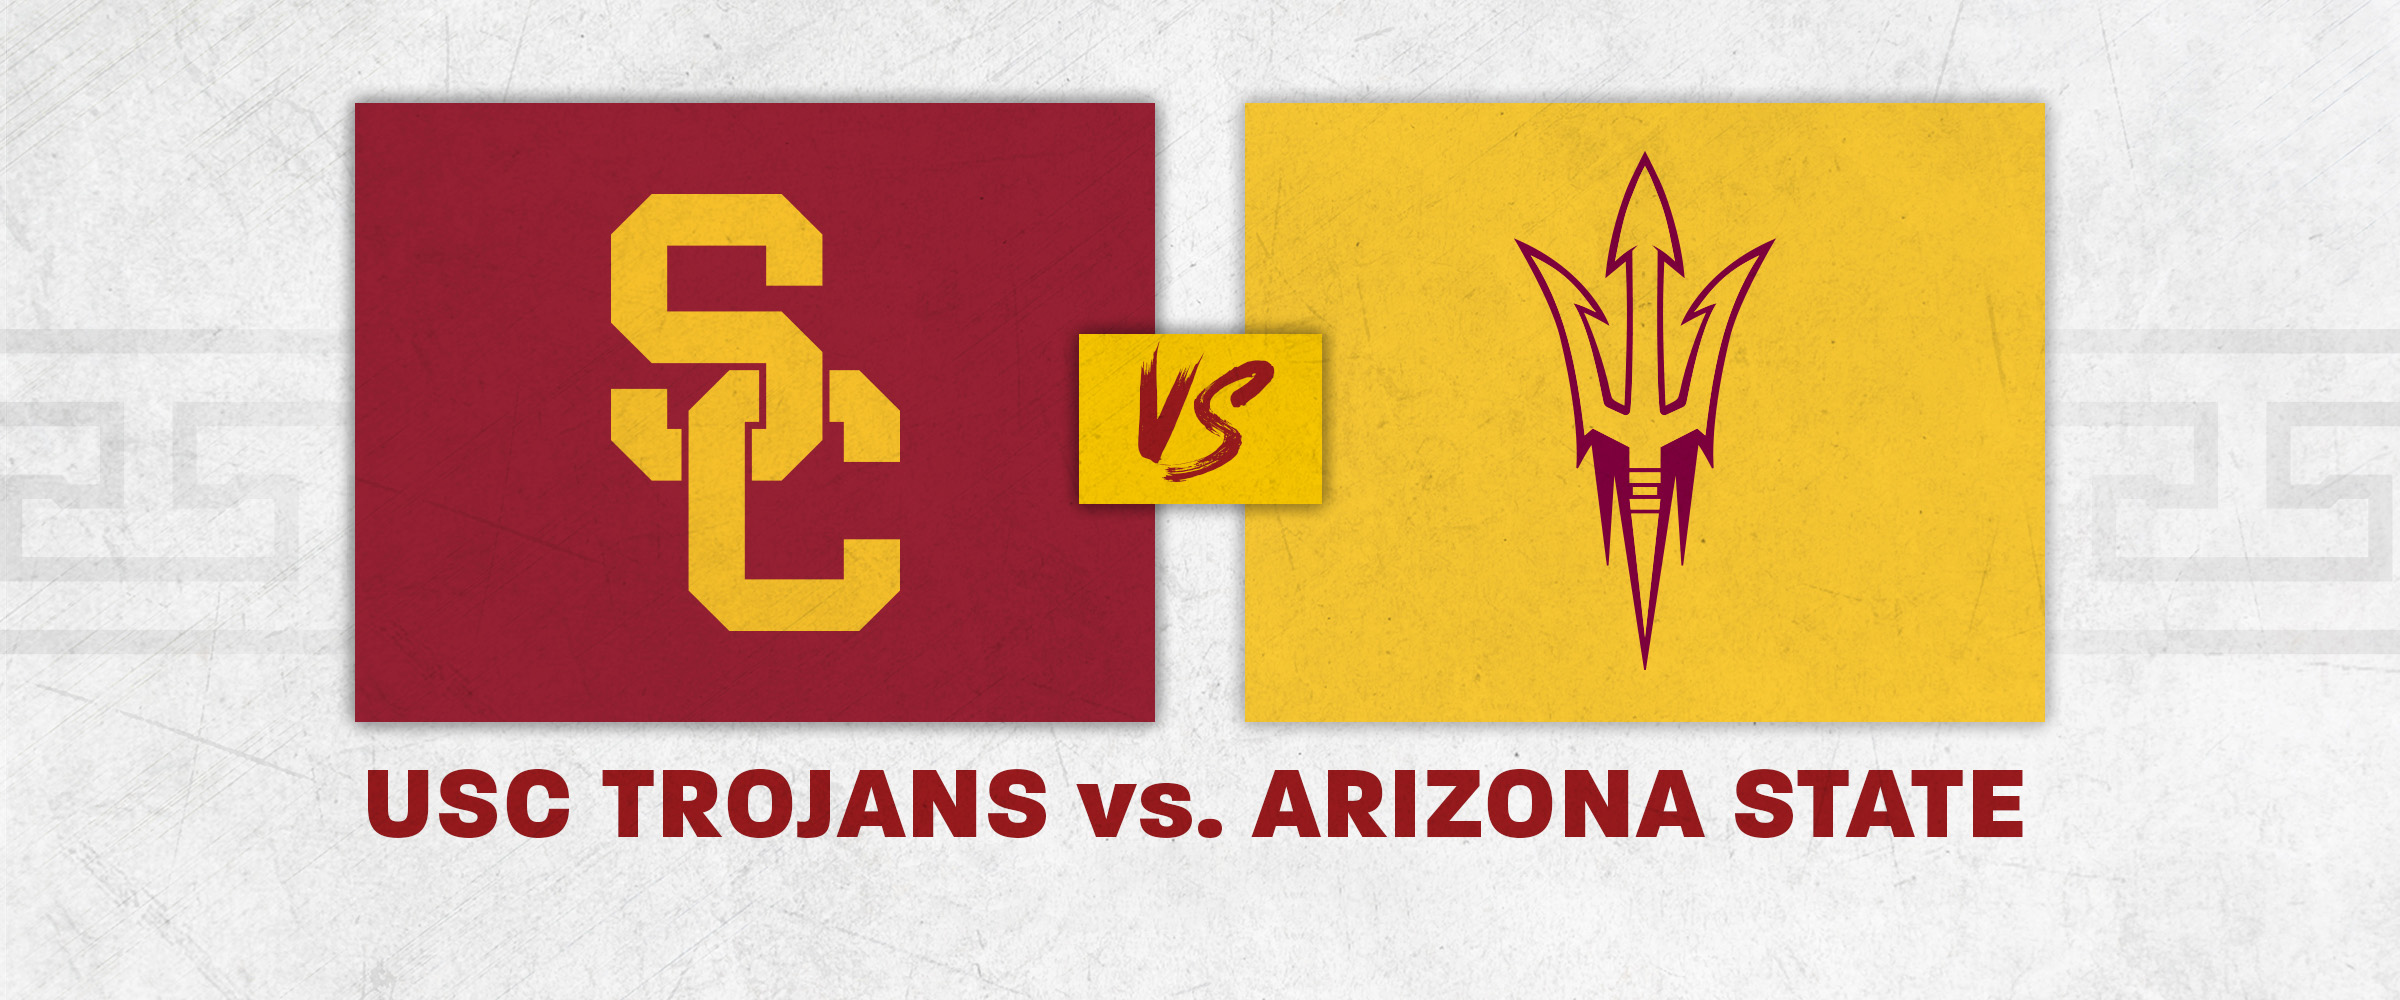 USC vs Arizona St.